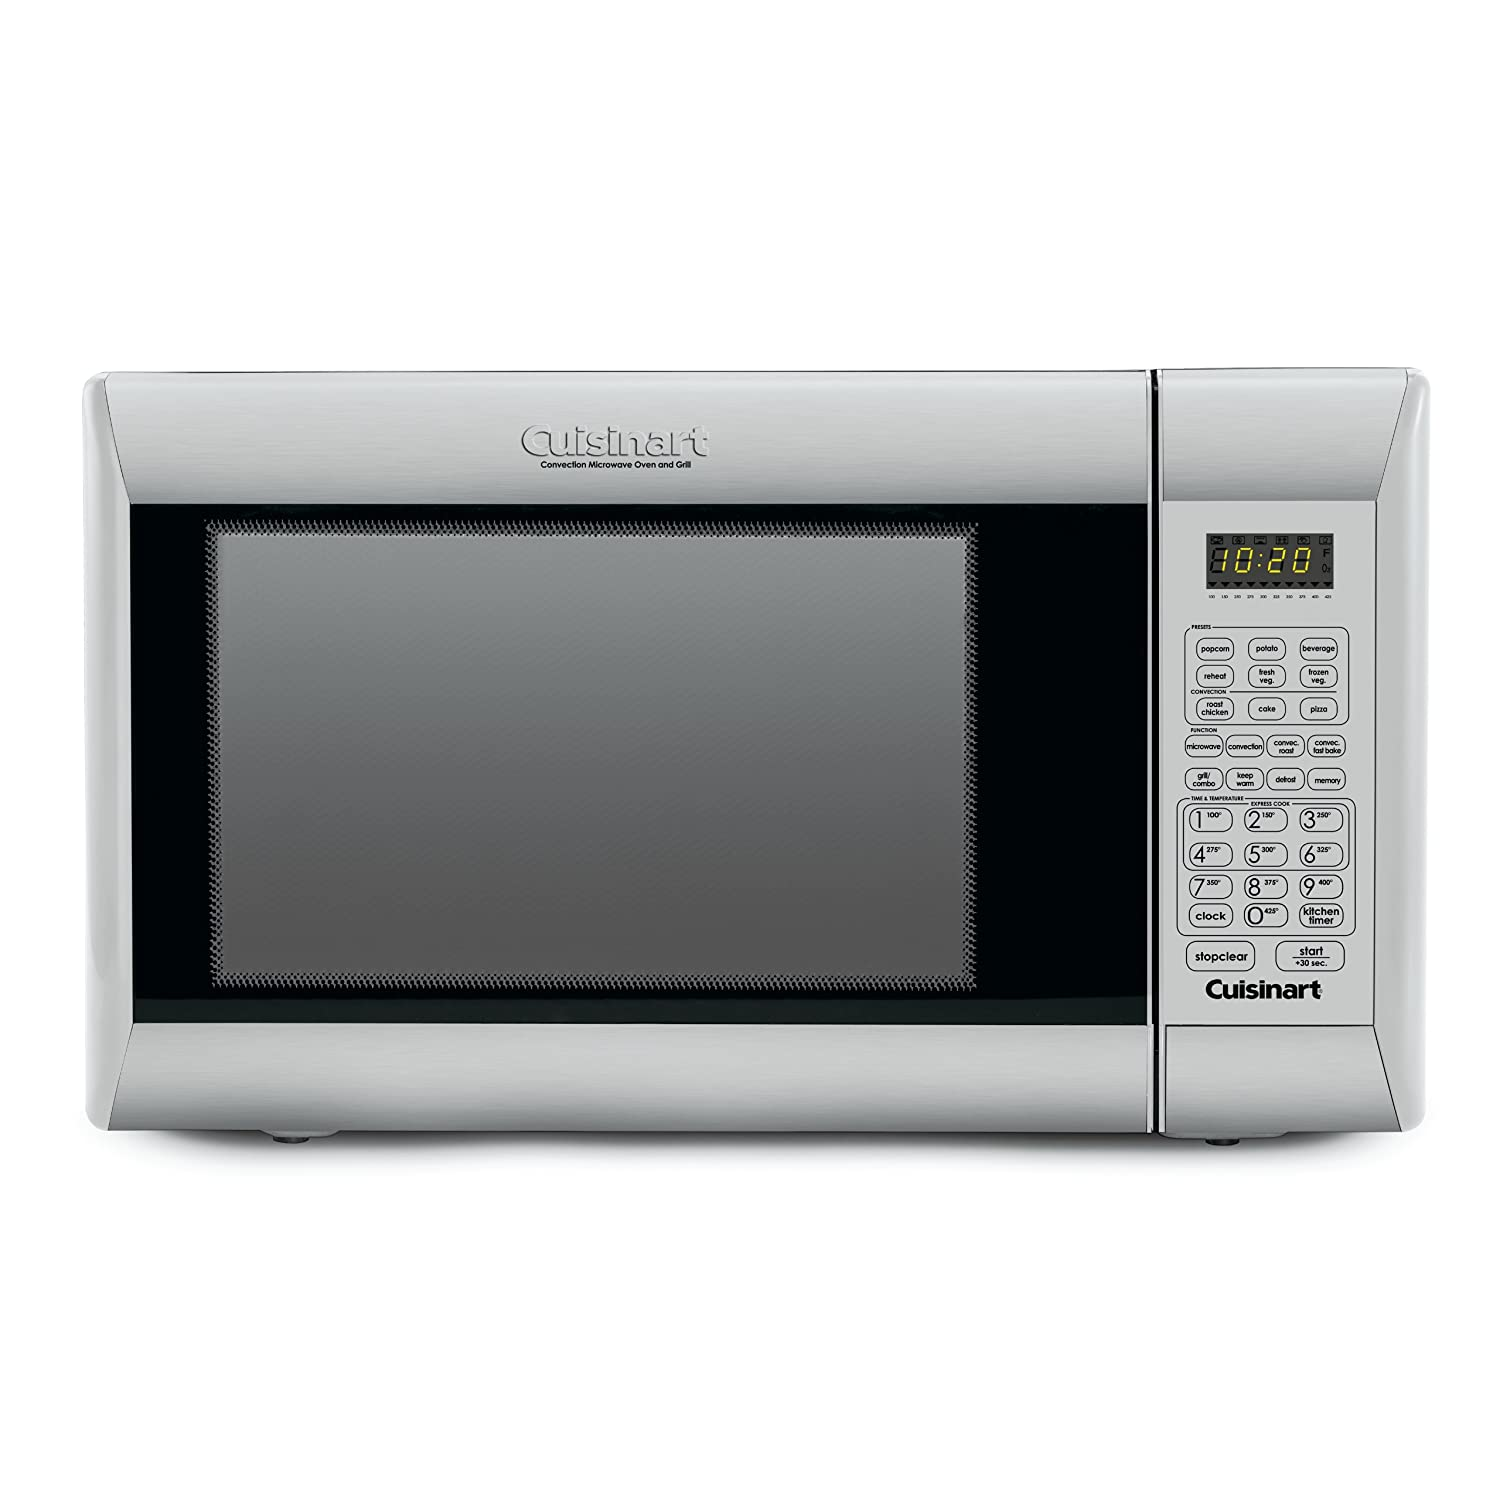 Small Convection Microwave Oven: Small Microwave Oven @BBT.com